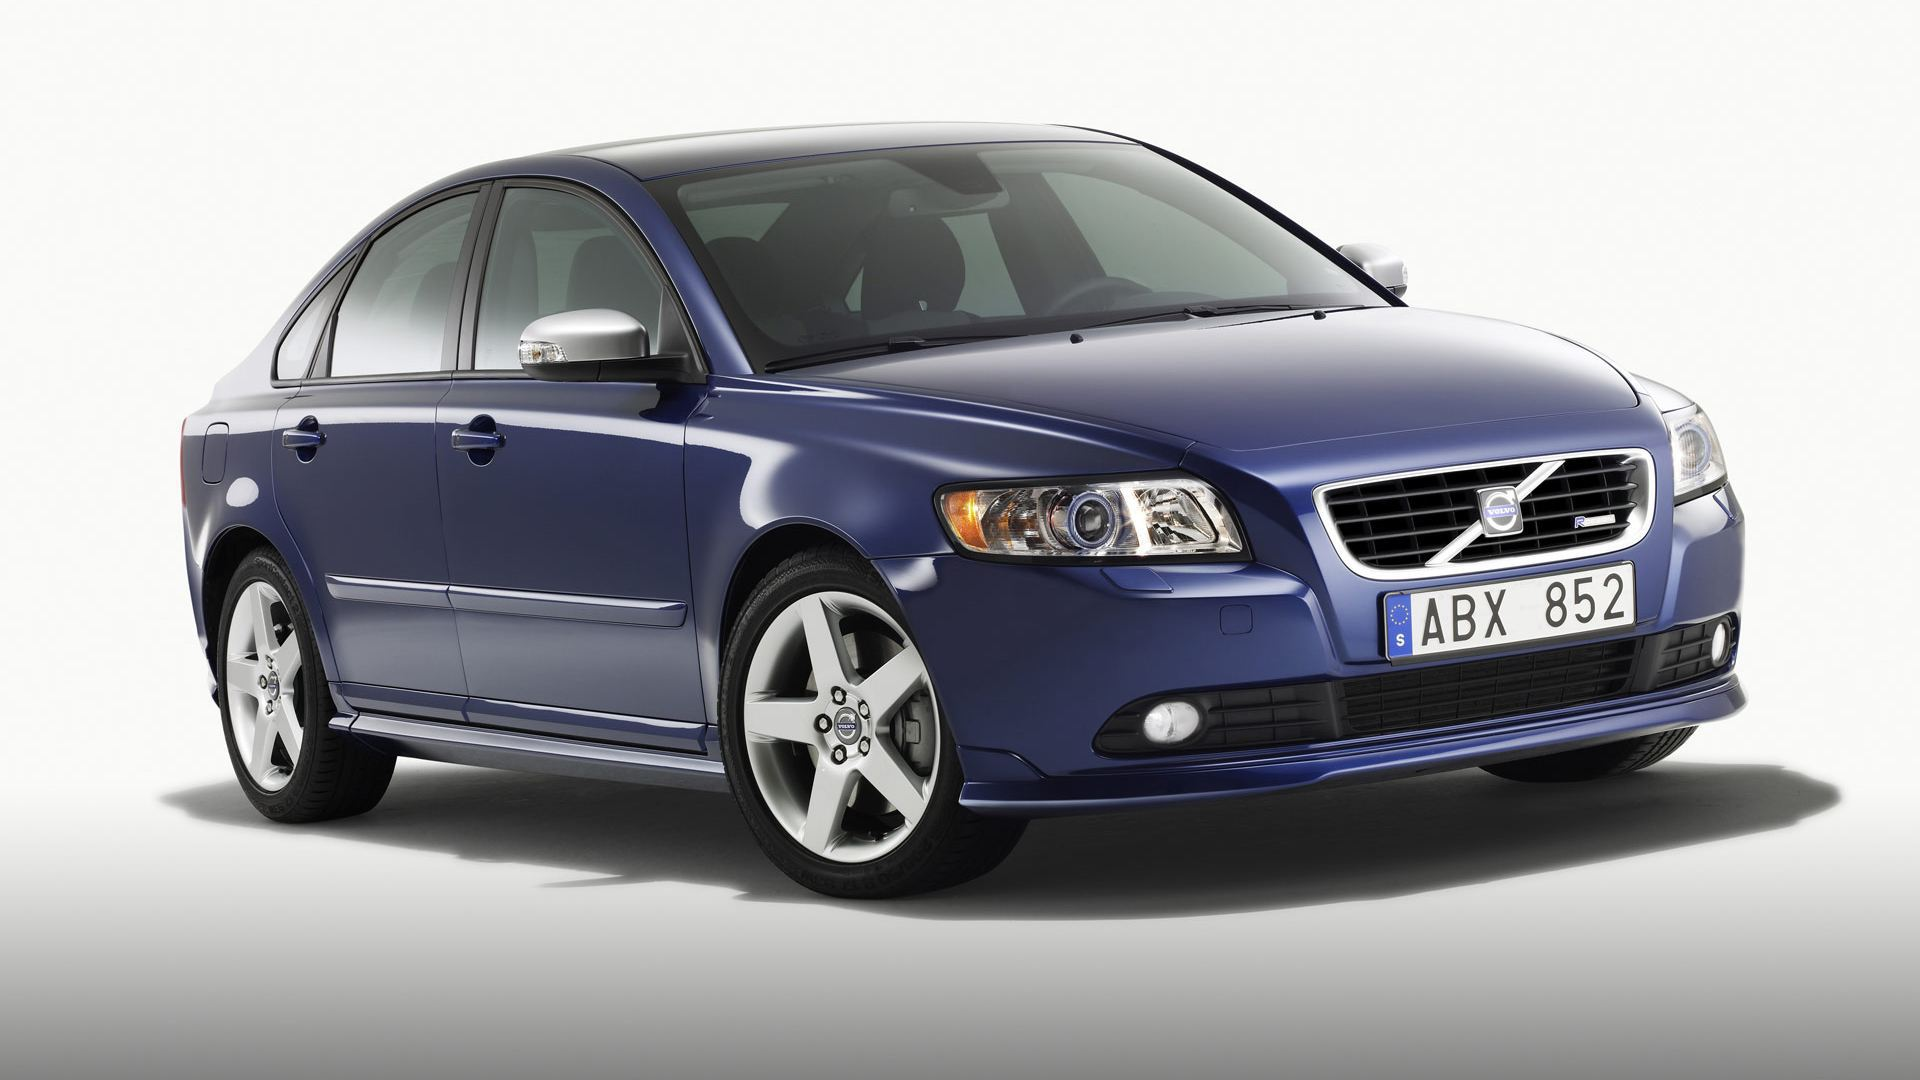 car models of Volvo s40 wallpapers and images   wallpapers 1920x1080